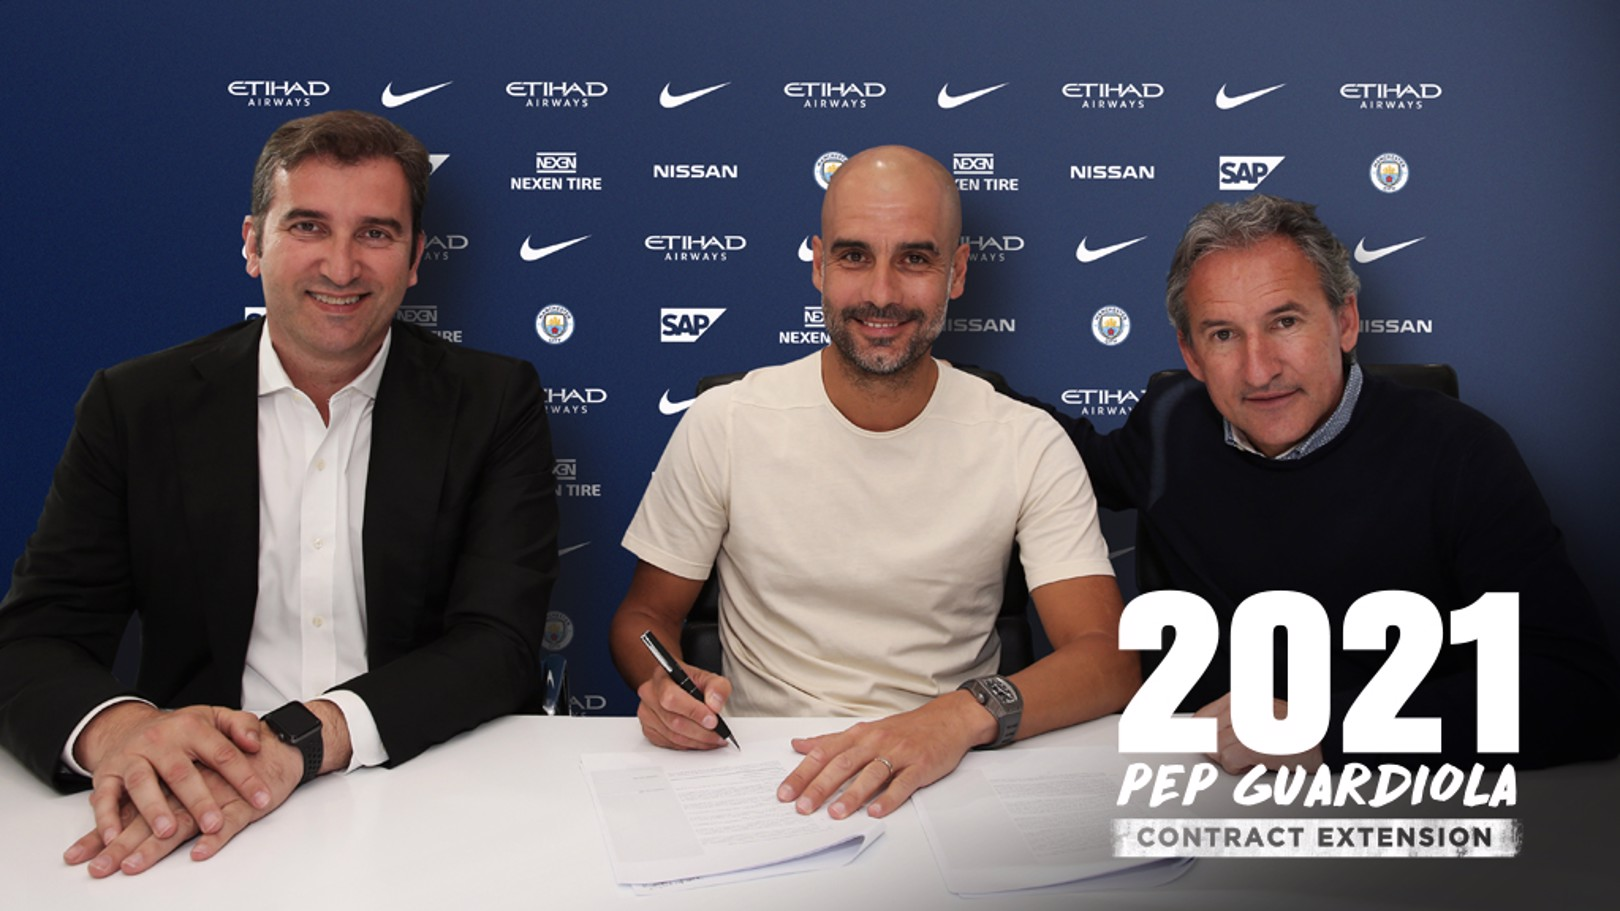 RENOVACIÓN. Guardiola con el City hasta 2021.